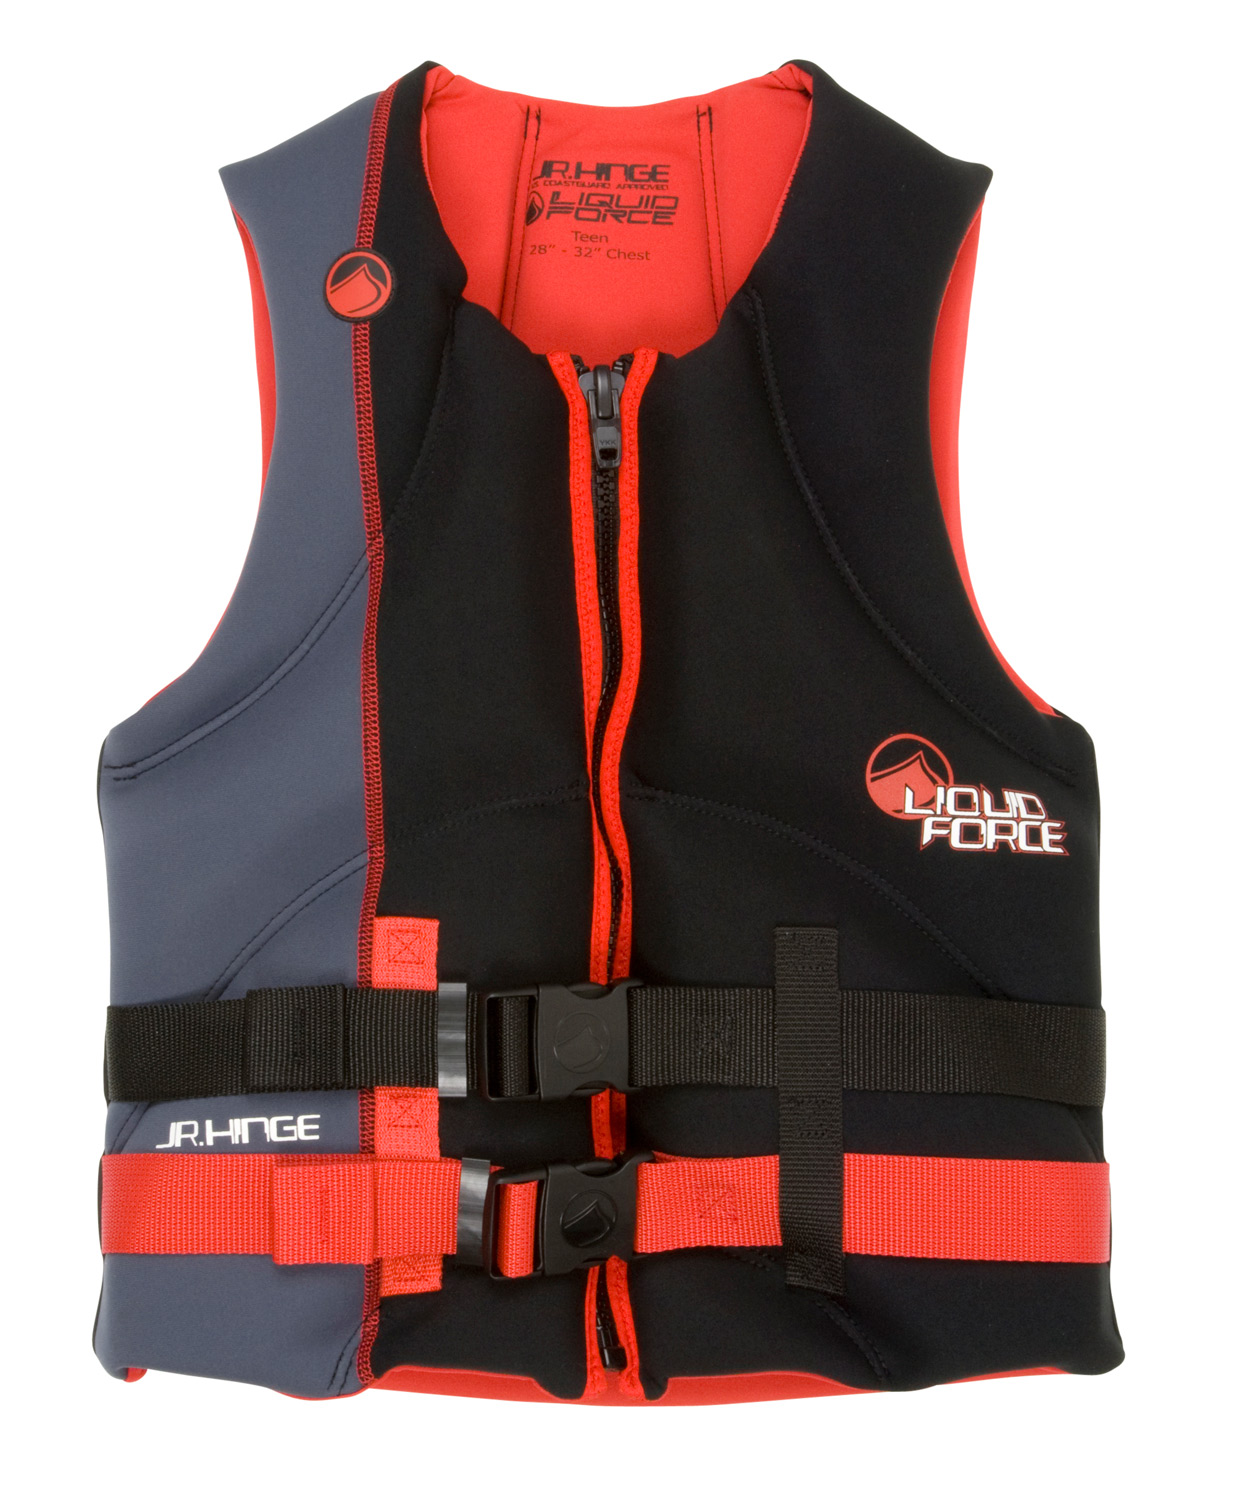 Wake The Hinge uses segmented foam panels and hinge points to allow for superior movement in a CGA vest. There's no comparison to the mobility and comfort and value this vest offers. The segmented sections are beveled to hinge with your every move and provide a high-end vest feel.Key Features of the Liquid Force Hinge CGA Wakeboard Vest: US Coast Guard Approved: Maximum flotation and safety Segmented Shoulders: Rounded separate sections of foam that flex and provide mobility Oversized Arm Holes: Extra space and comfort for added mobility Heavy Duty Zipper: Secure, solid hold Hidden Straps: Clean and simple - $59.99